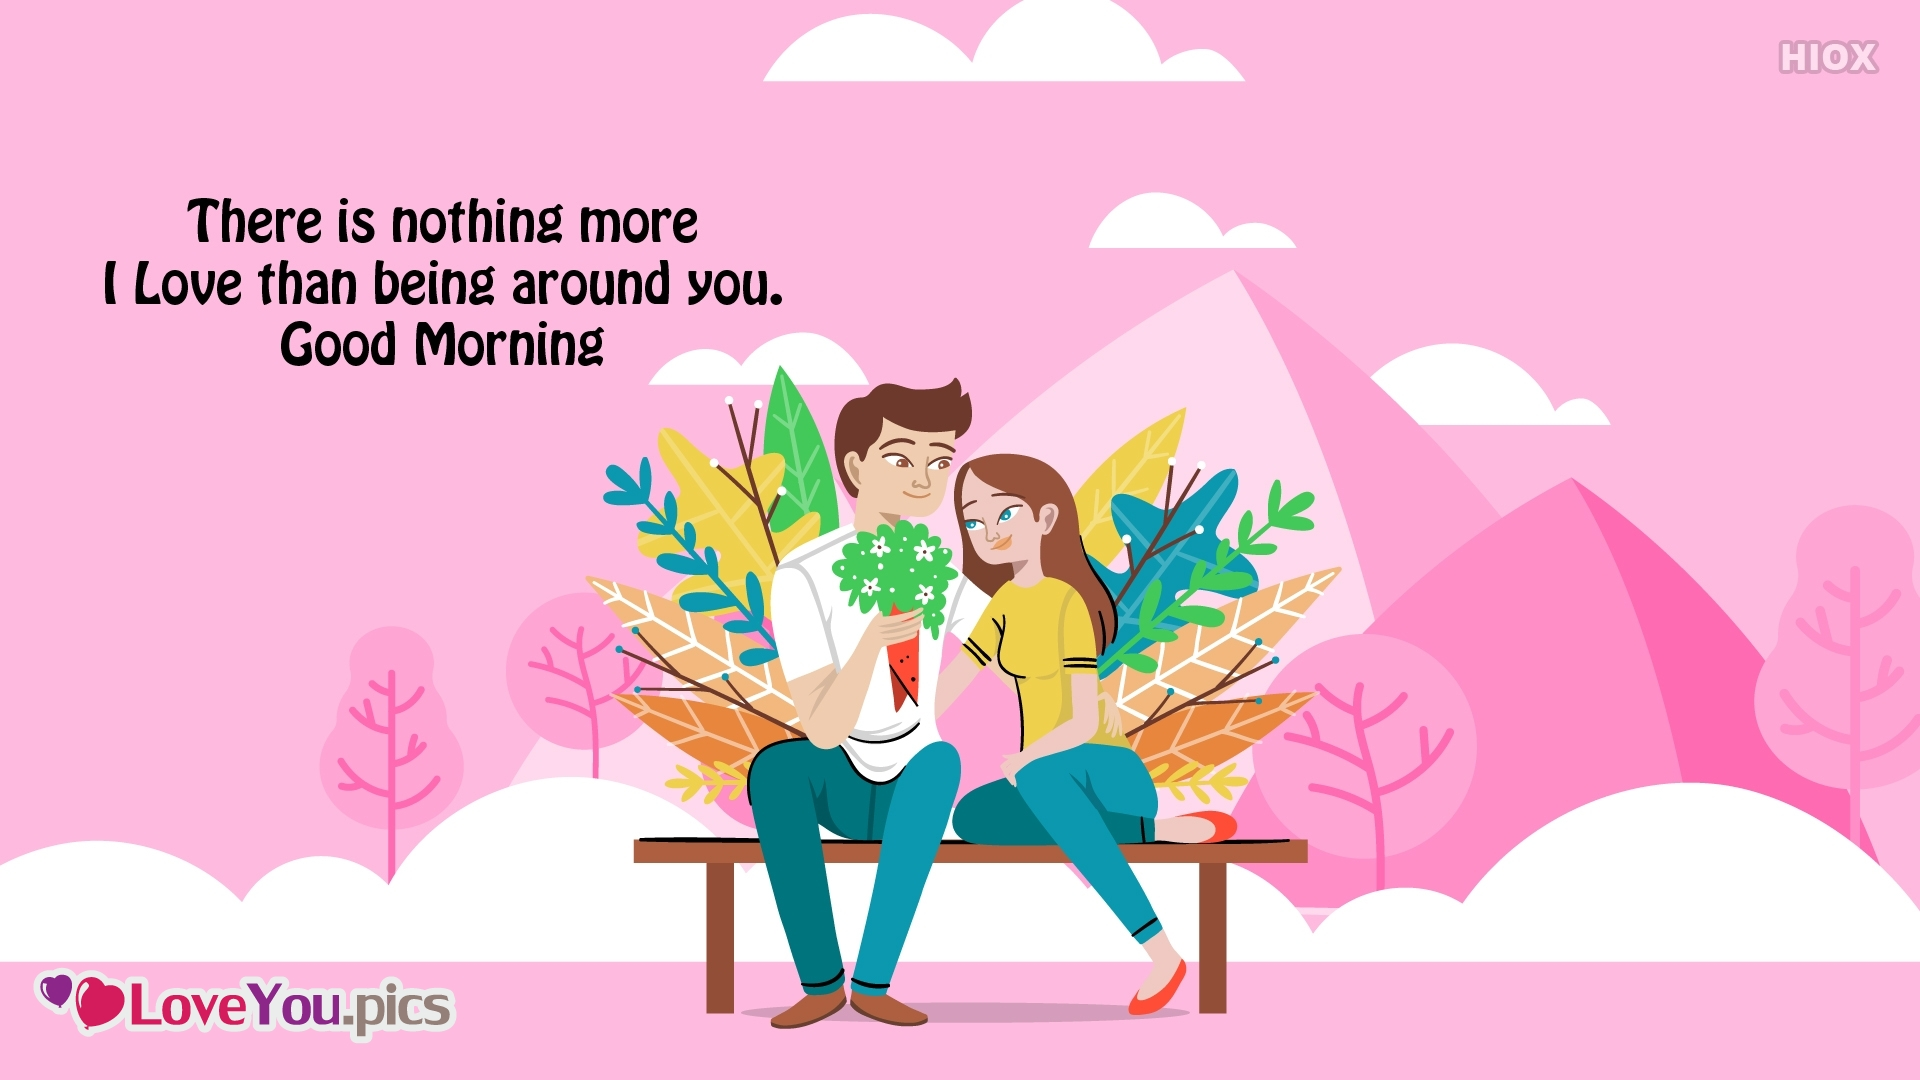 There is Nothing More I Love Than Being Around You. Good Morning